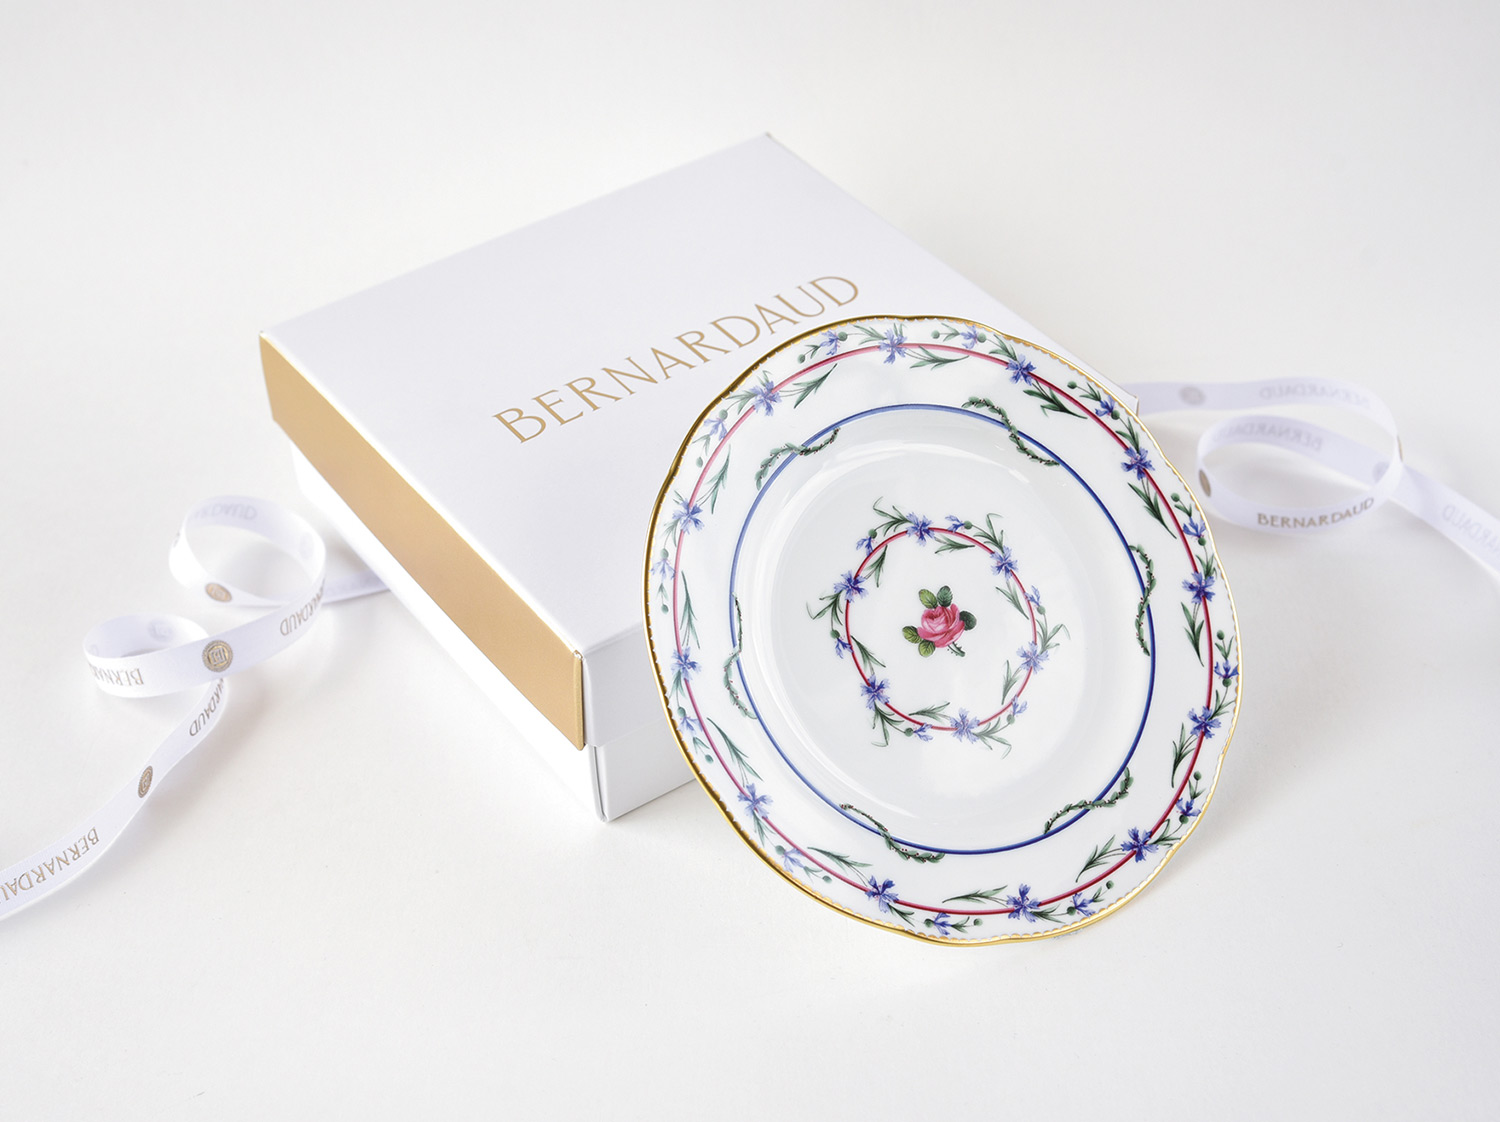 Coffret de 1 assiette 16 cm en porcelaine de la collection Gobelet du roy Bernardaud